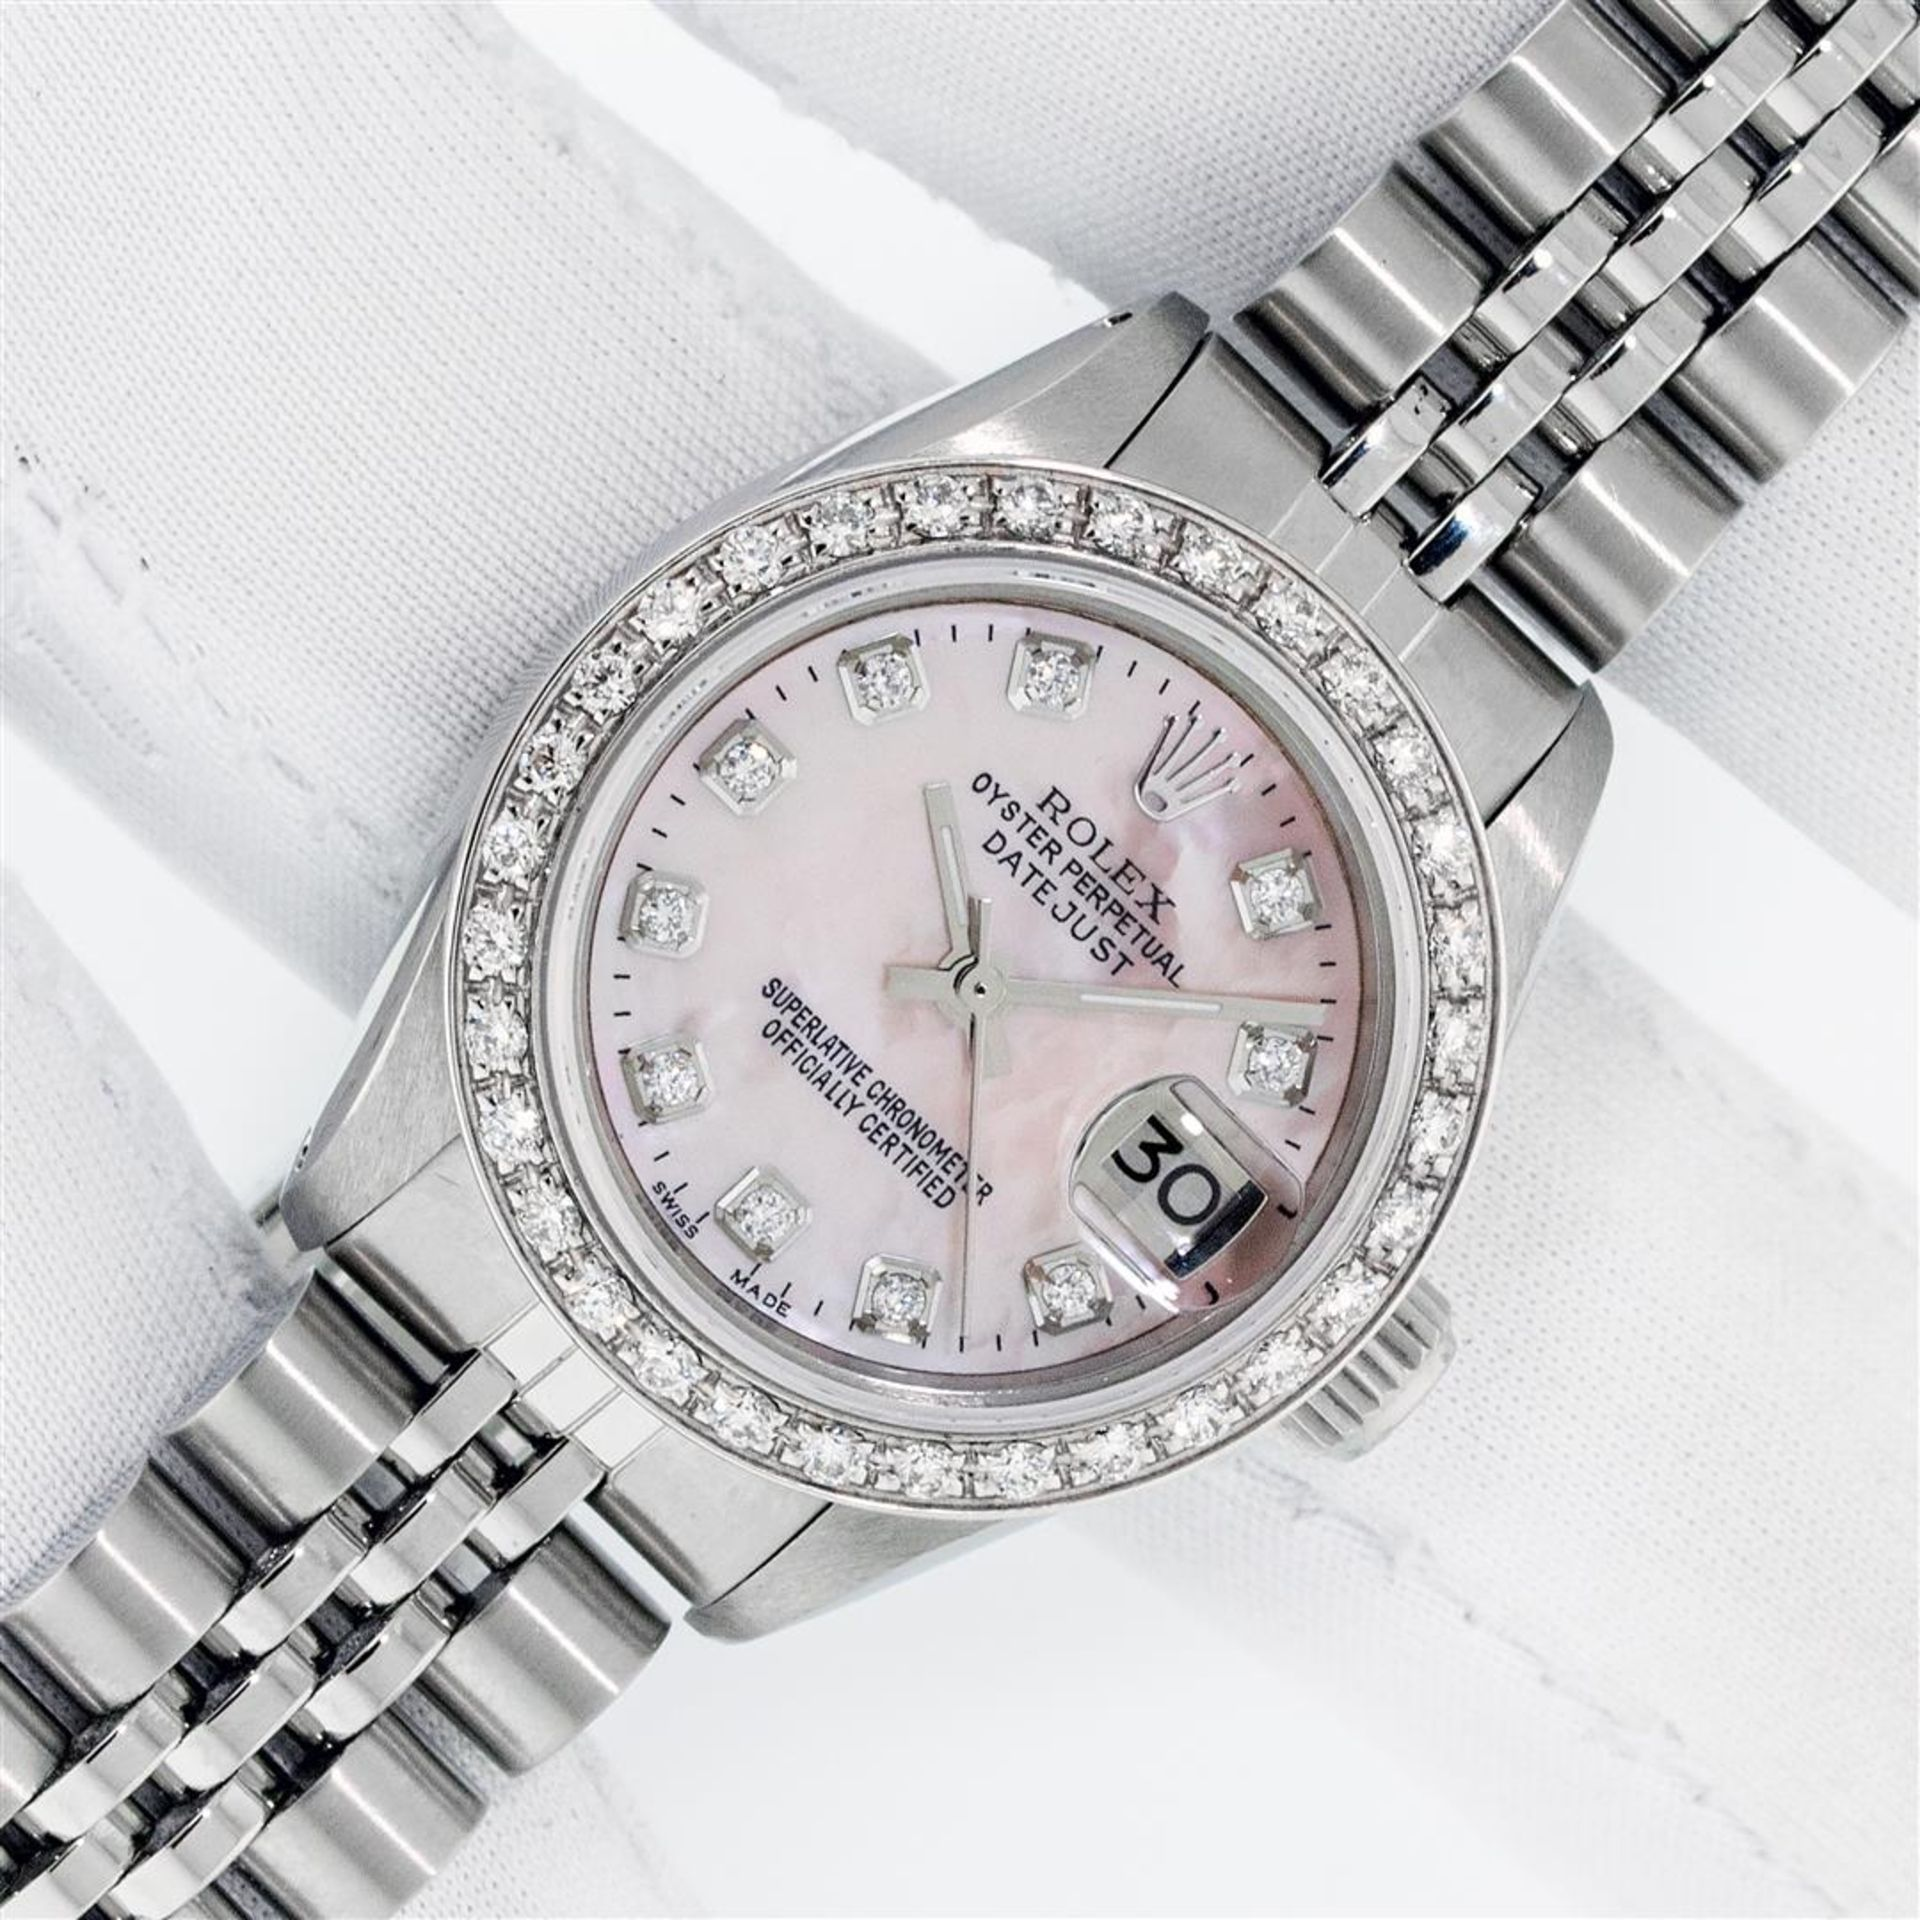 Rolex Ladies Stainless Steel Pink MOP Diamond 26MM Oyster Perpetaul Datejust Wit - Image 2 of 9